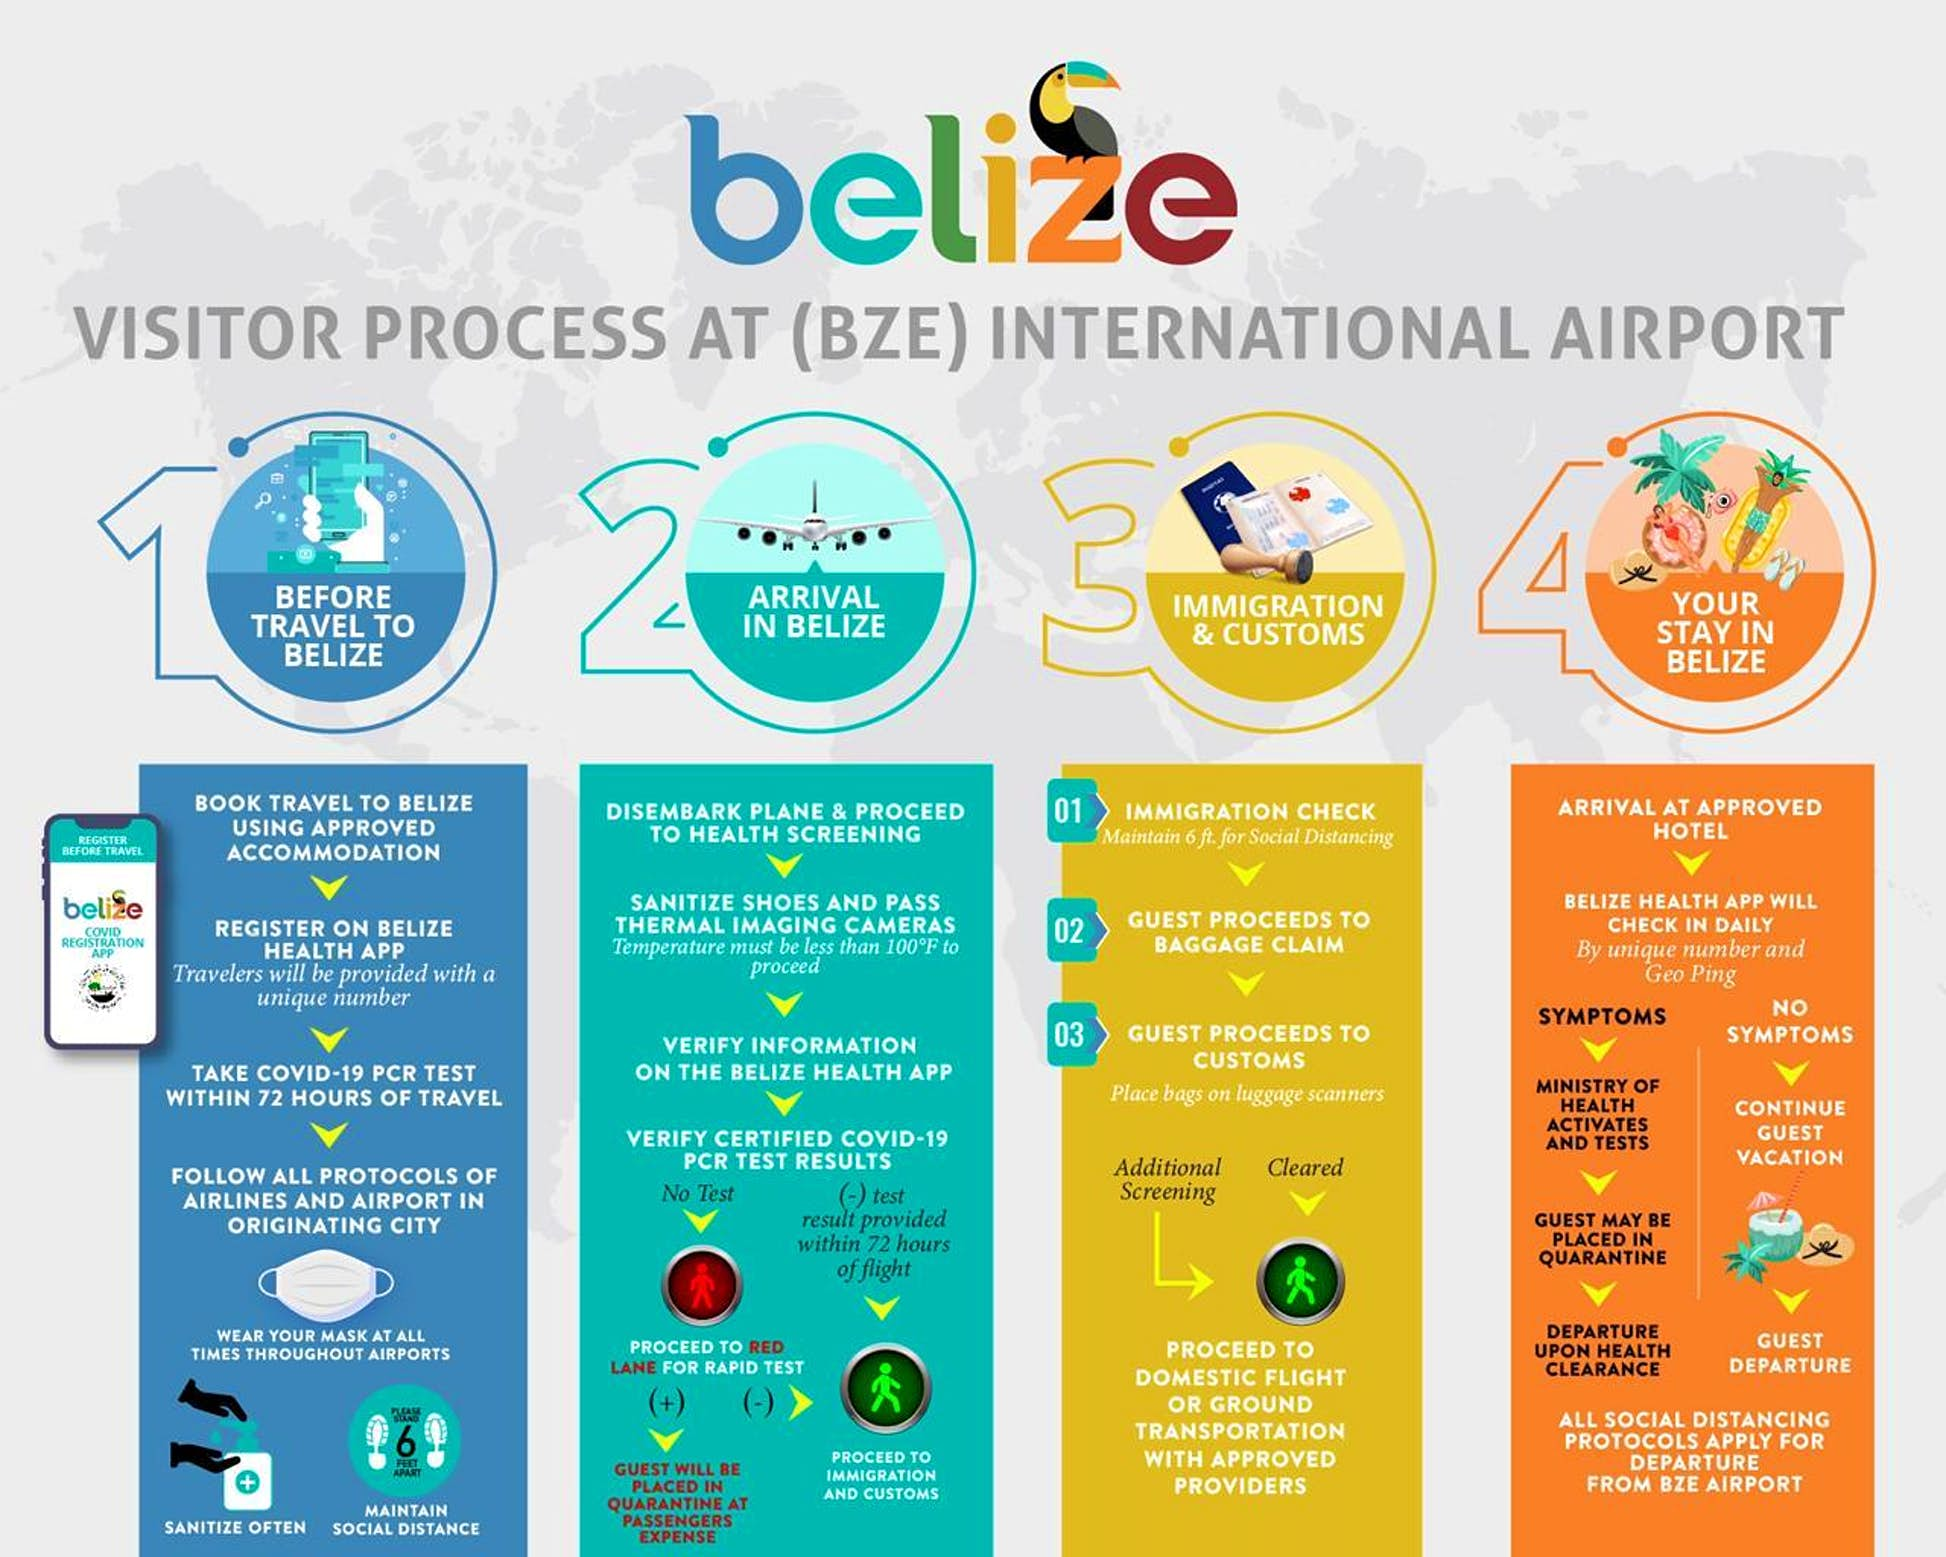 Protocols for COVID-19 in Belize © Courtesy of the Government of Belize Press Office